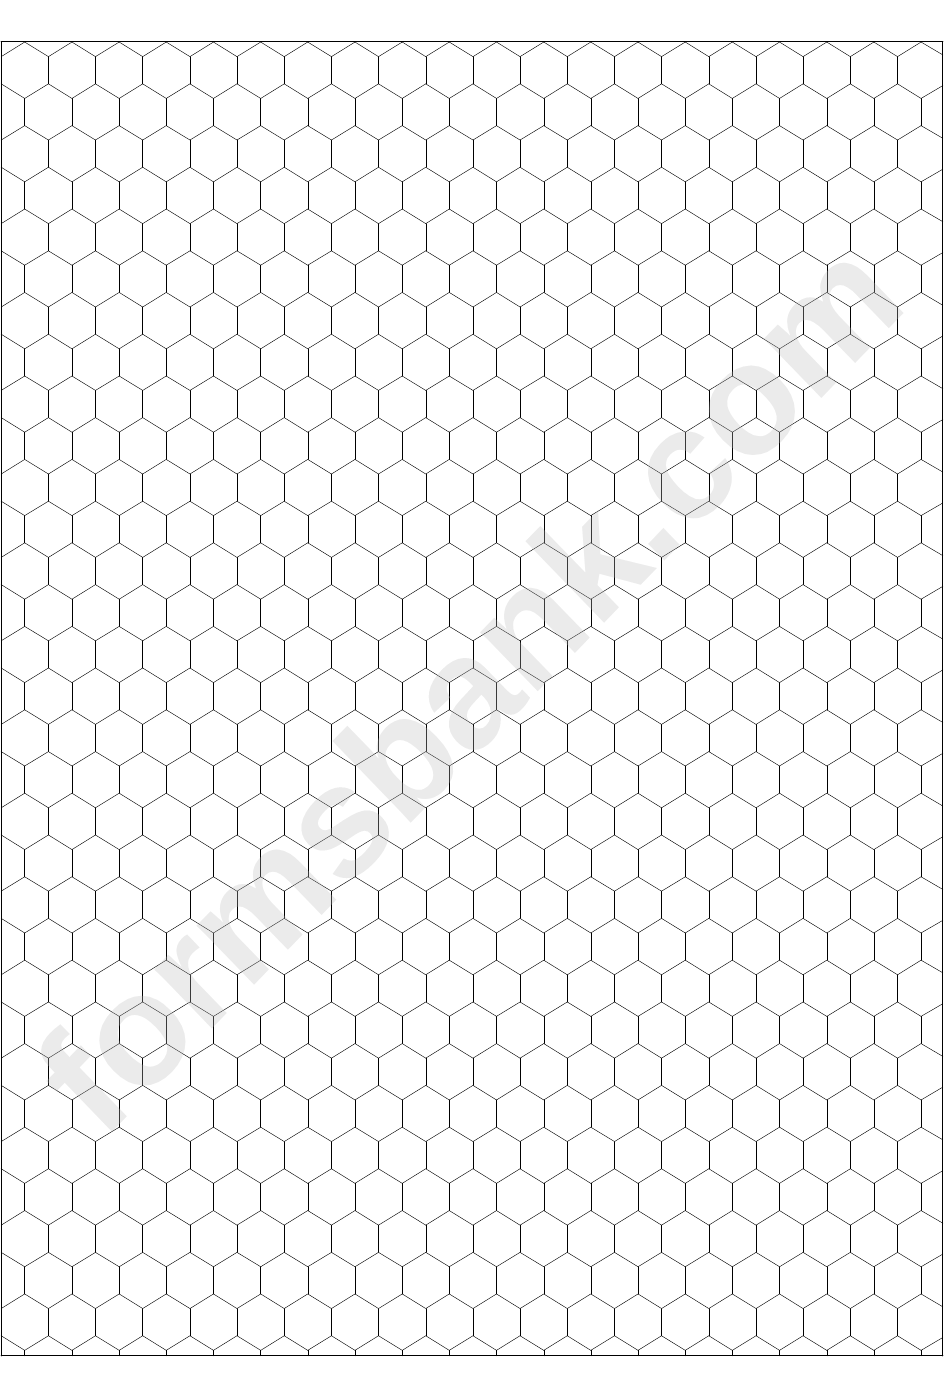 Hexagon Graph Paper Template printable pdf download